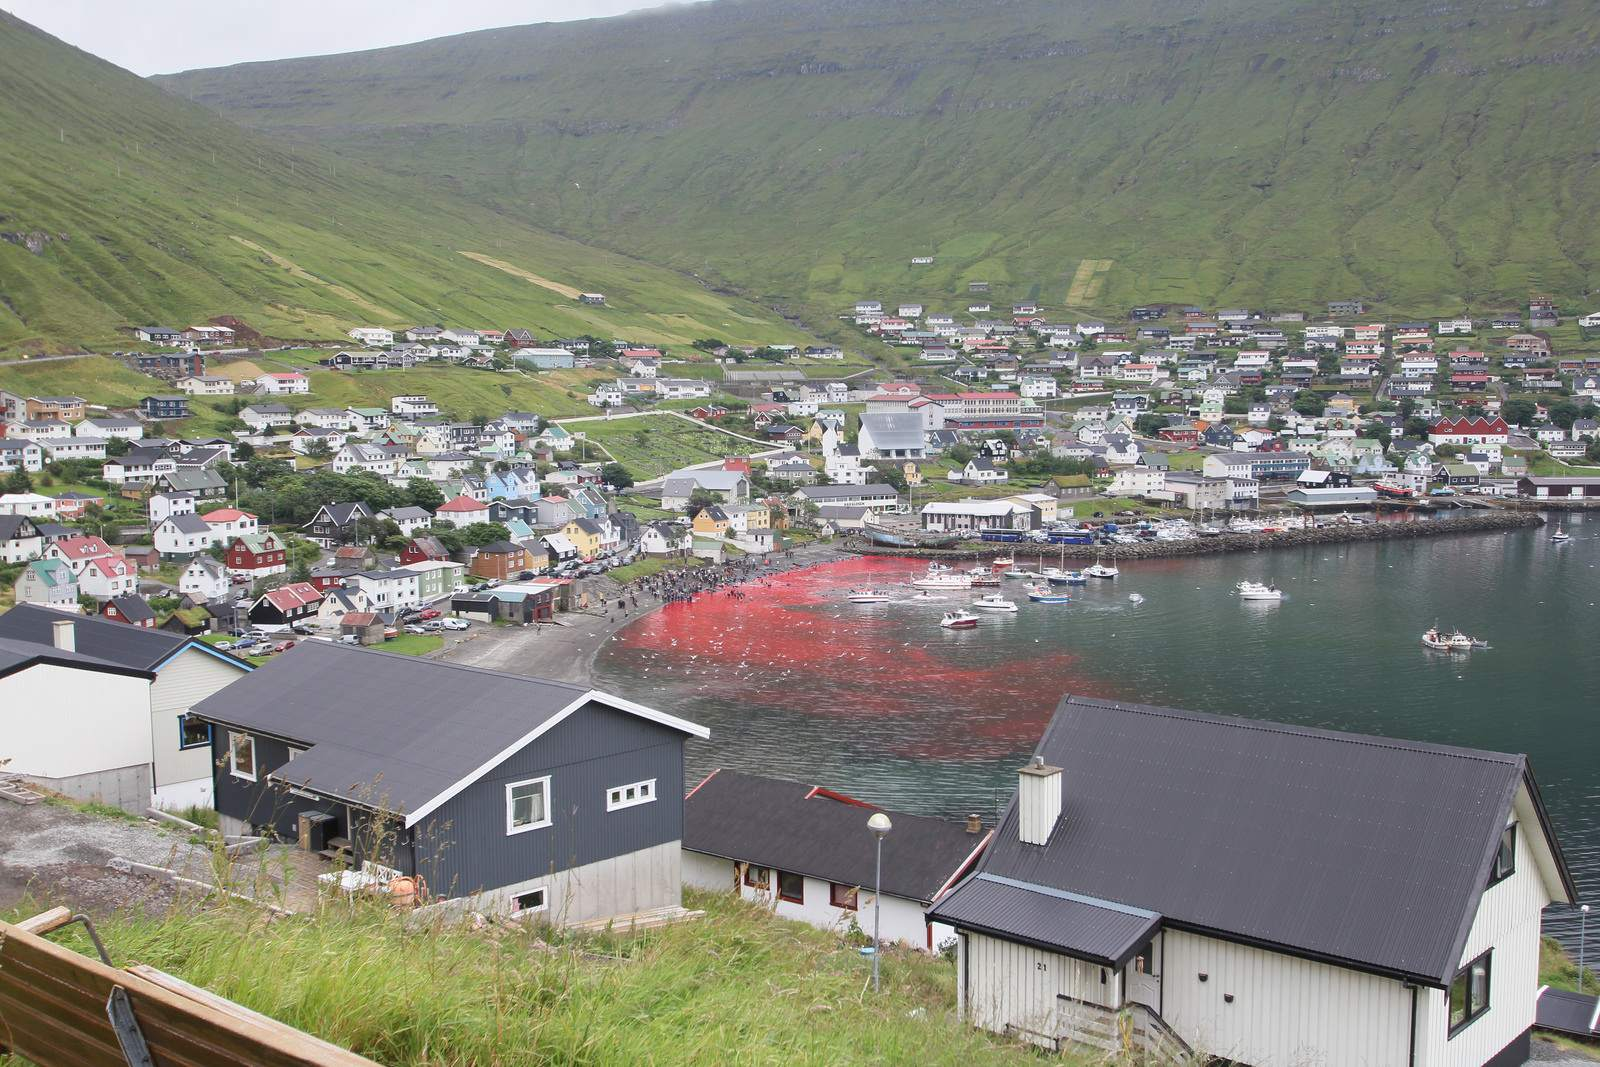 whaling6 Whale Drive at Faroe Islands